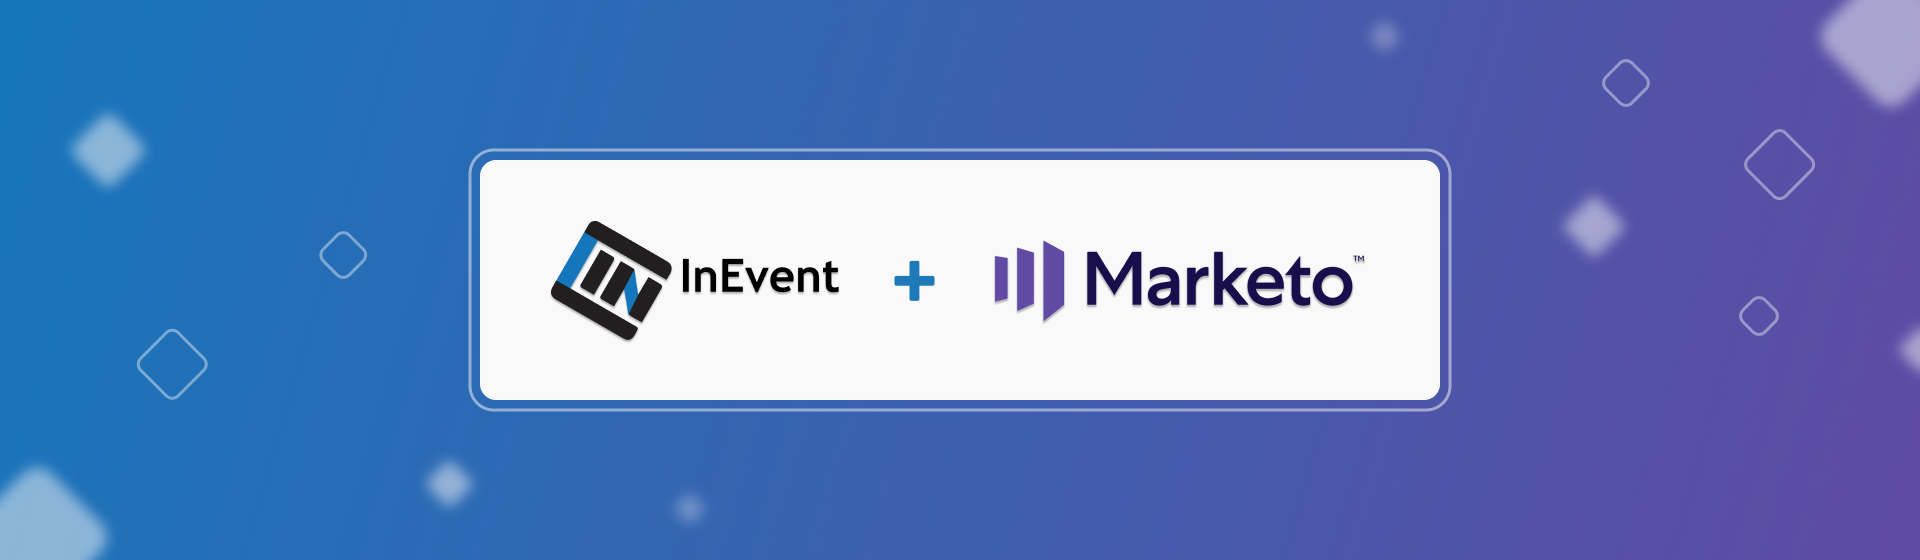 Integración de eventos InEvent & Marketo